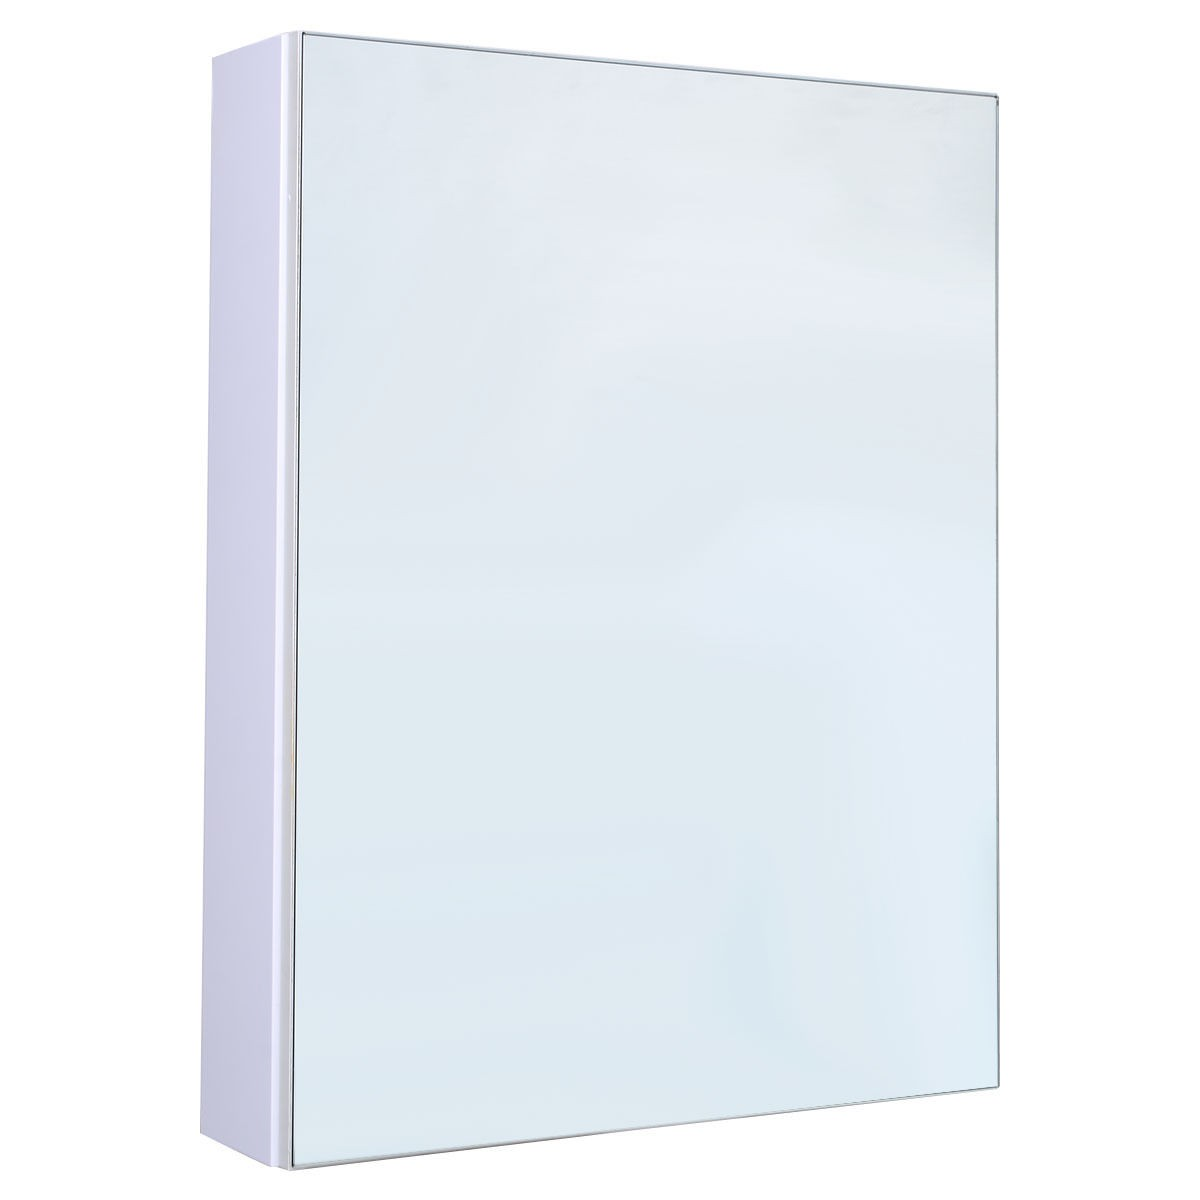 3 Door Mirrored Bathroom Cabinet 3 Mirror Door 36 Quot 20 Quot Wide Wall Mount Mirrored Bathroom